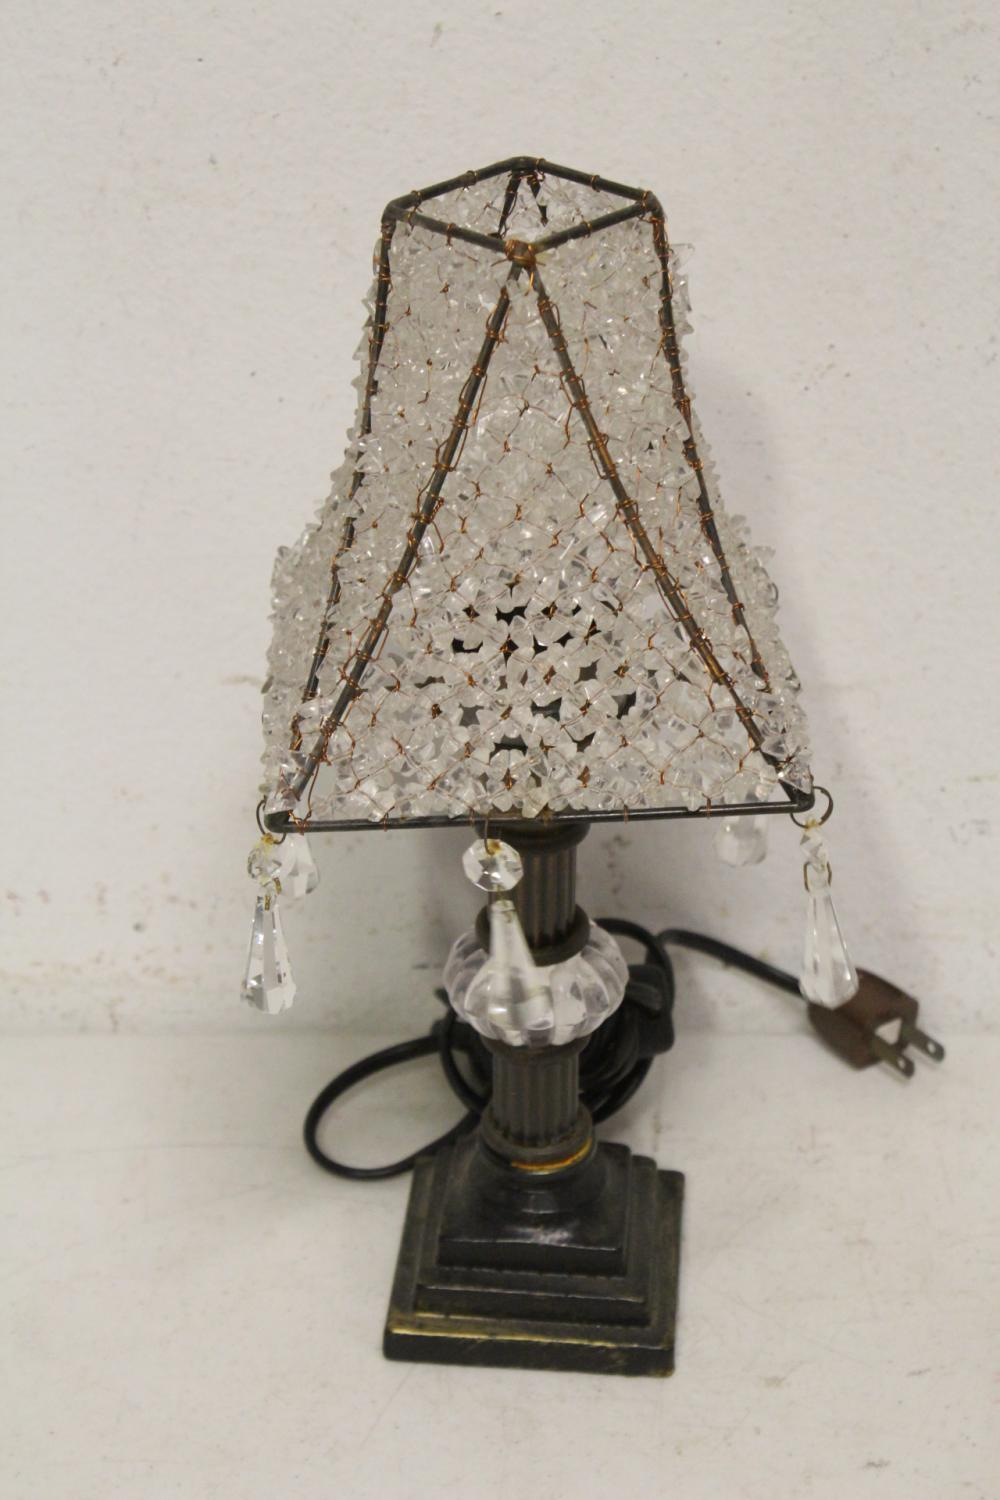 Lot 108: Lot of crystals & glasses, and a table lamp